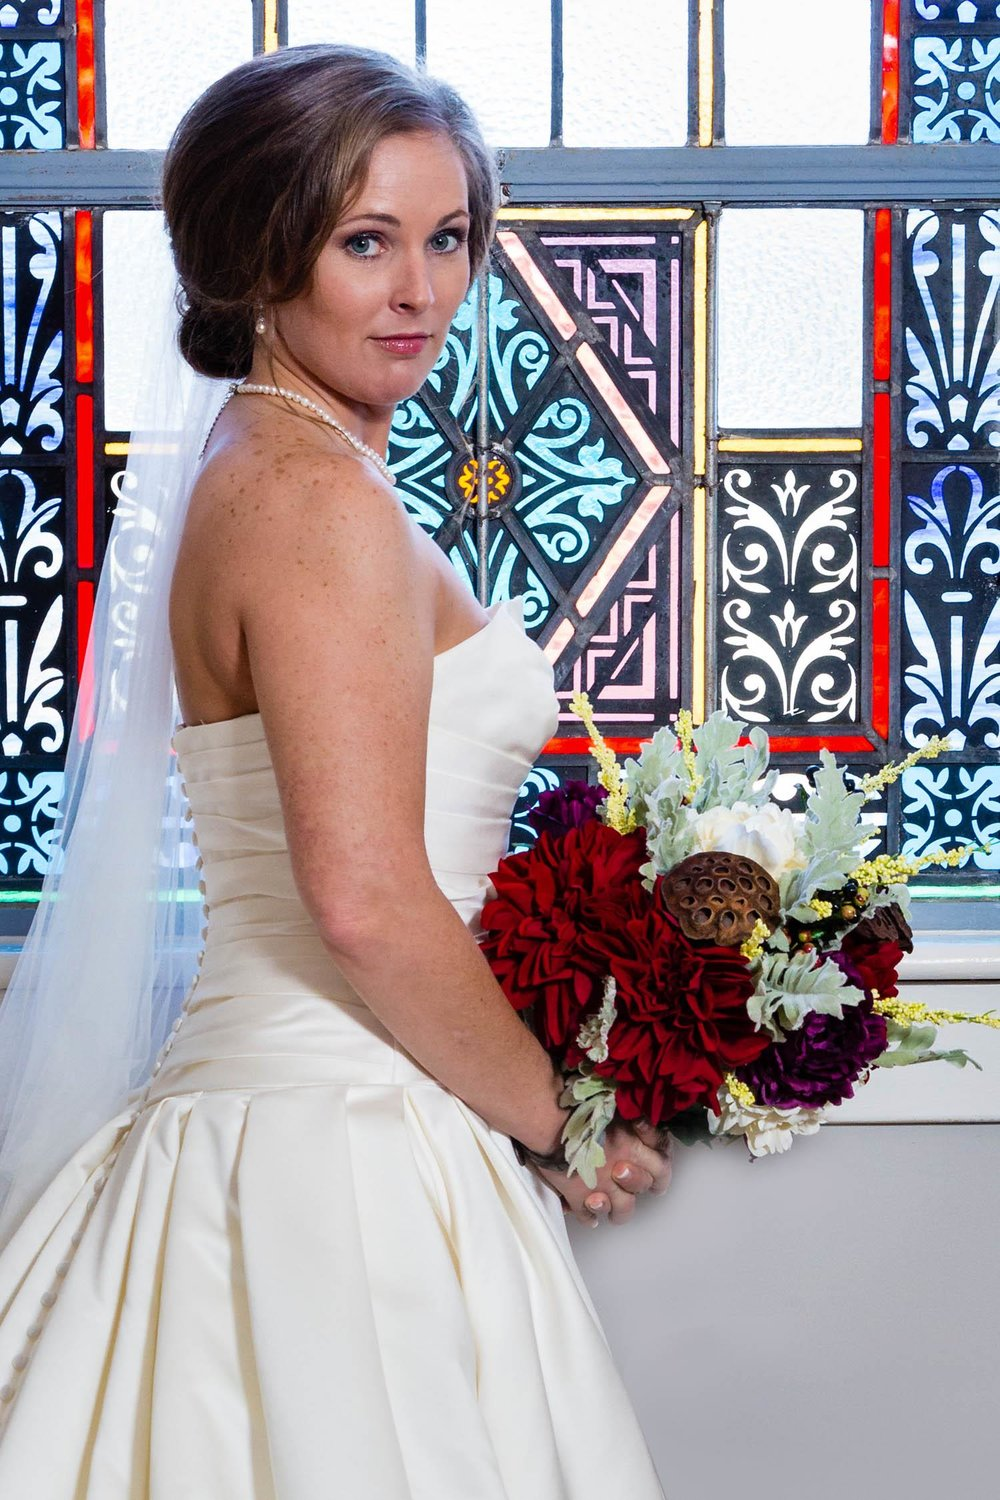 Bride with Stained Glass Window